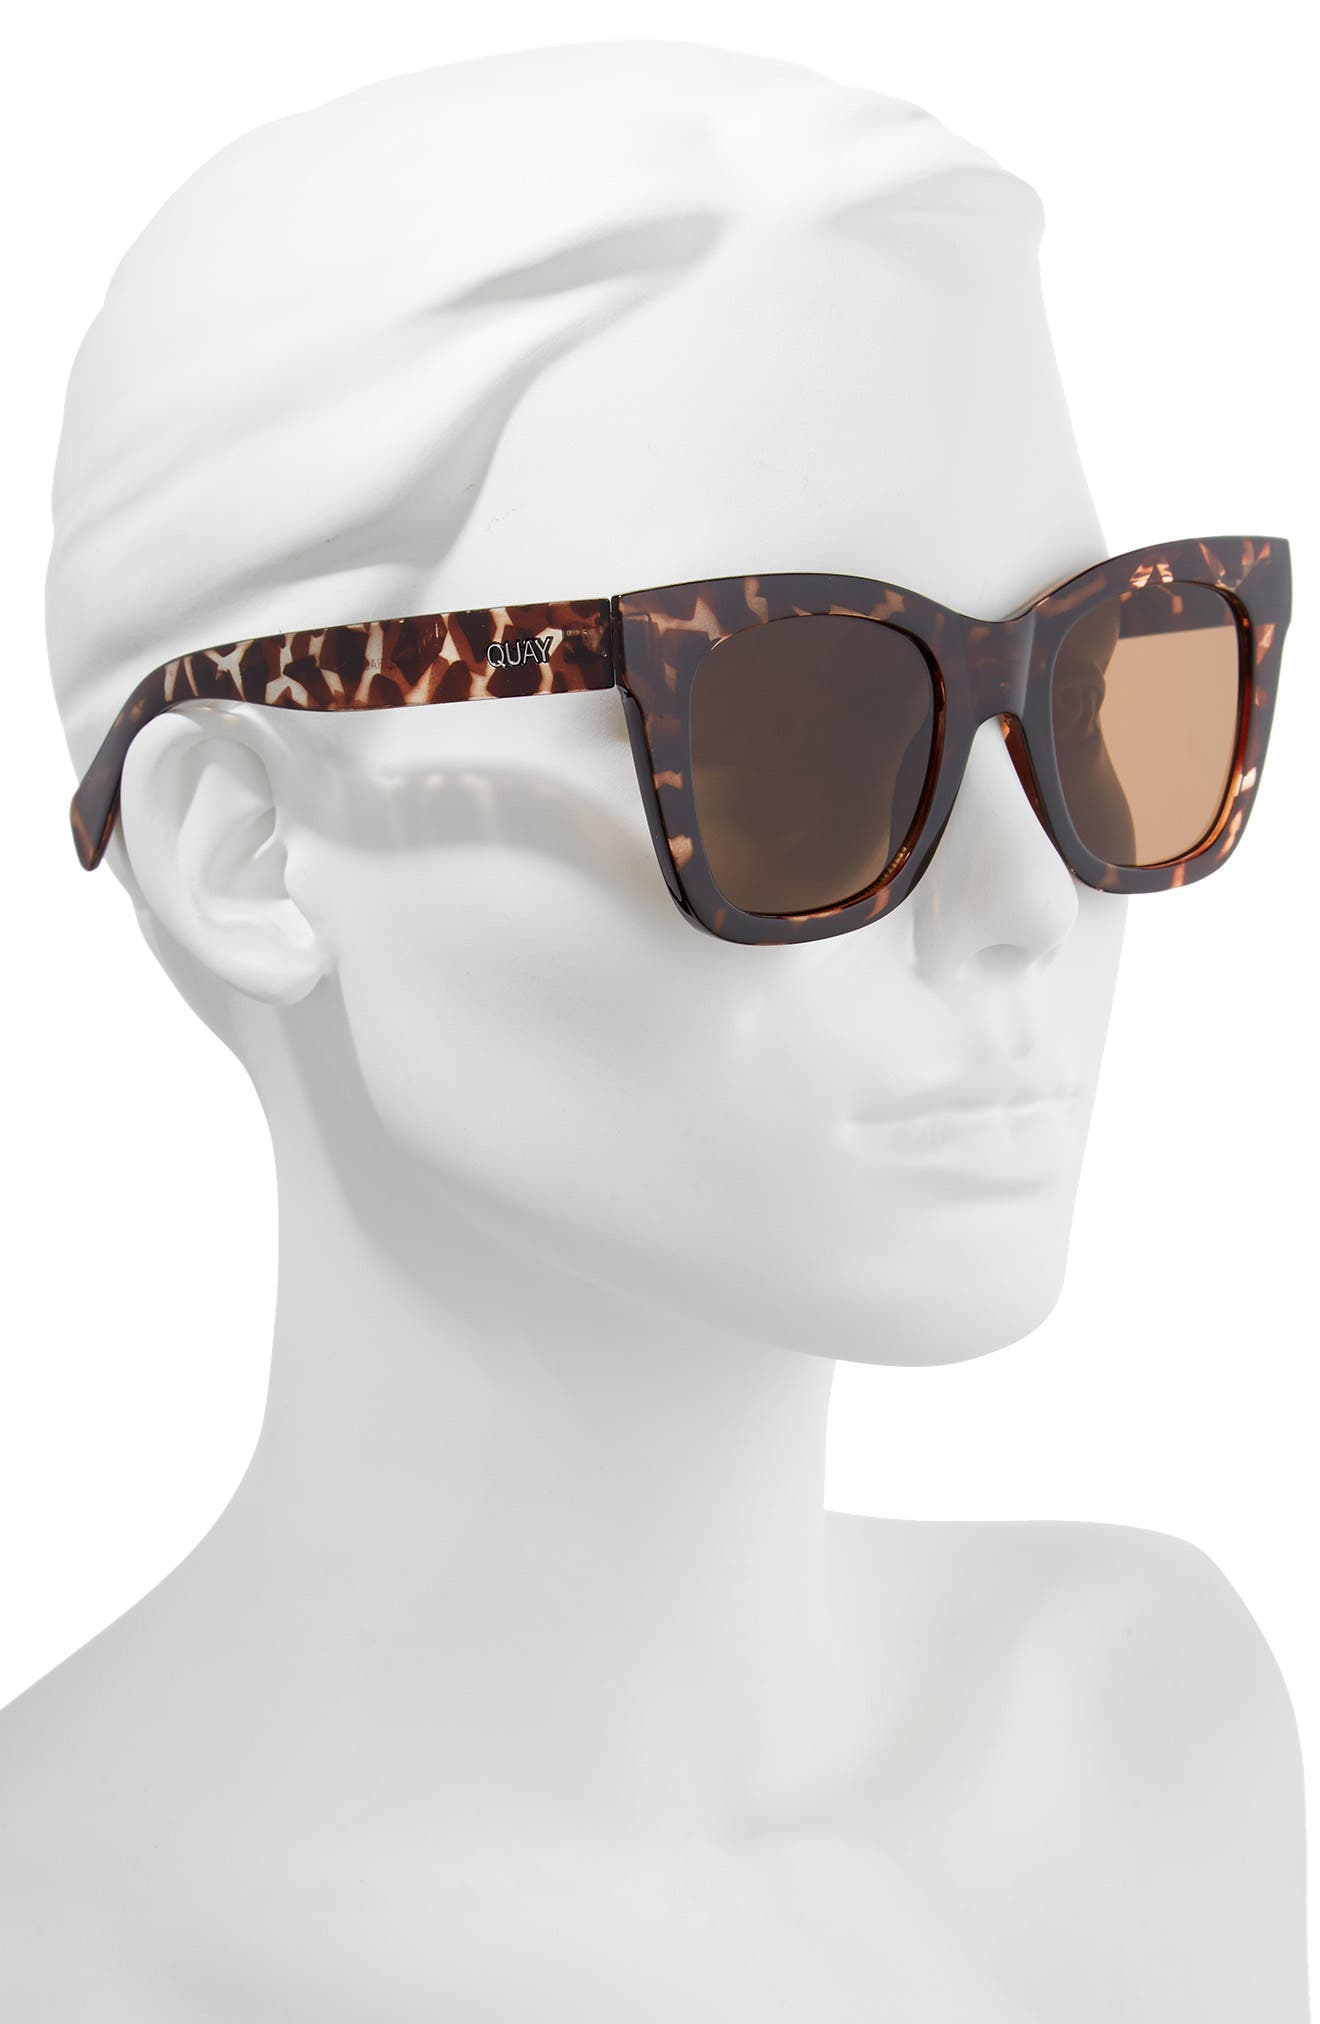 After Hours 50mm Square Sunglasses,                             Alternate thumbnail 2, color,                             TORT / BROWN